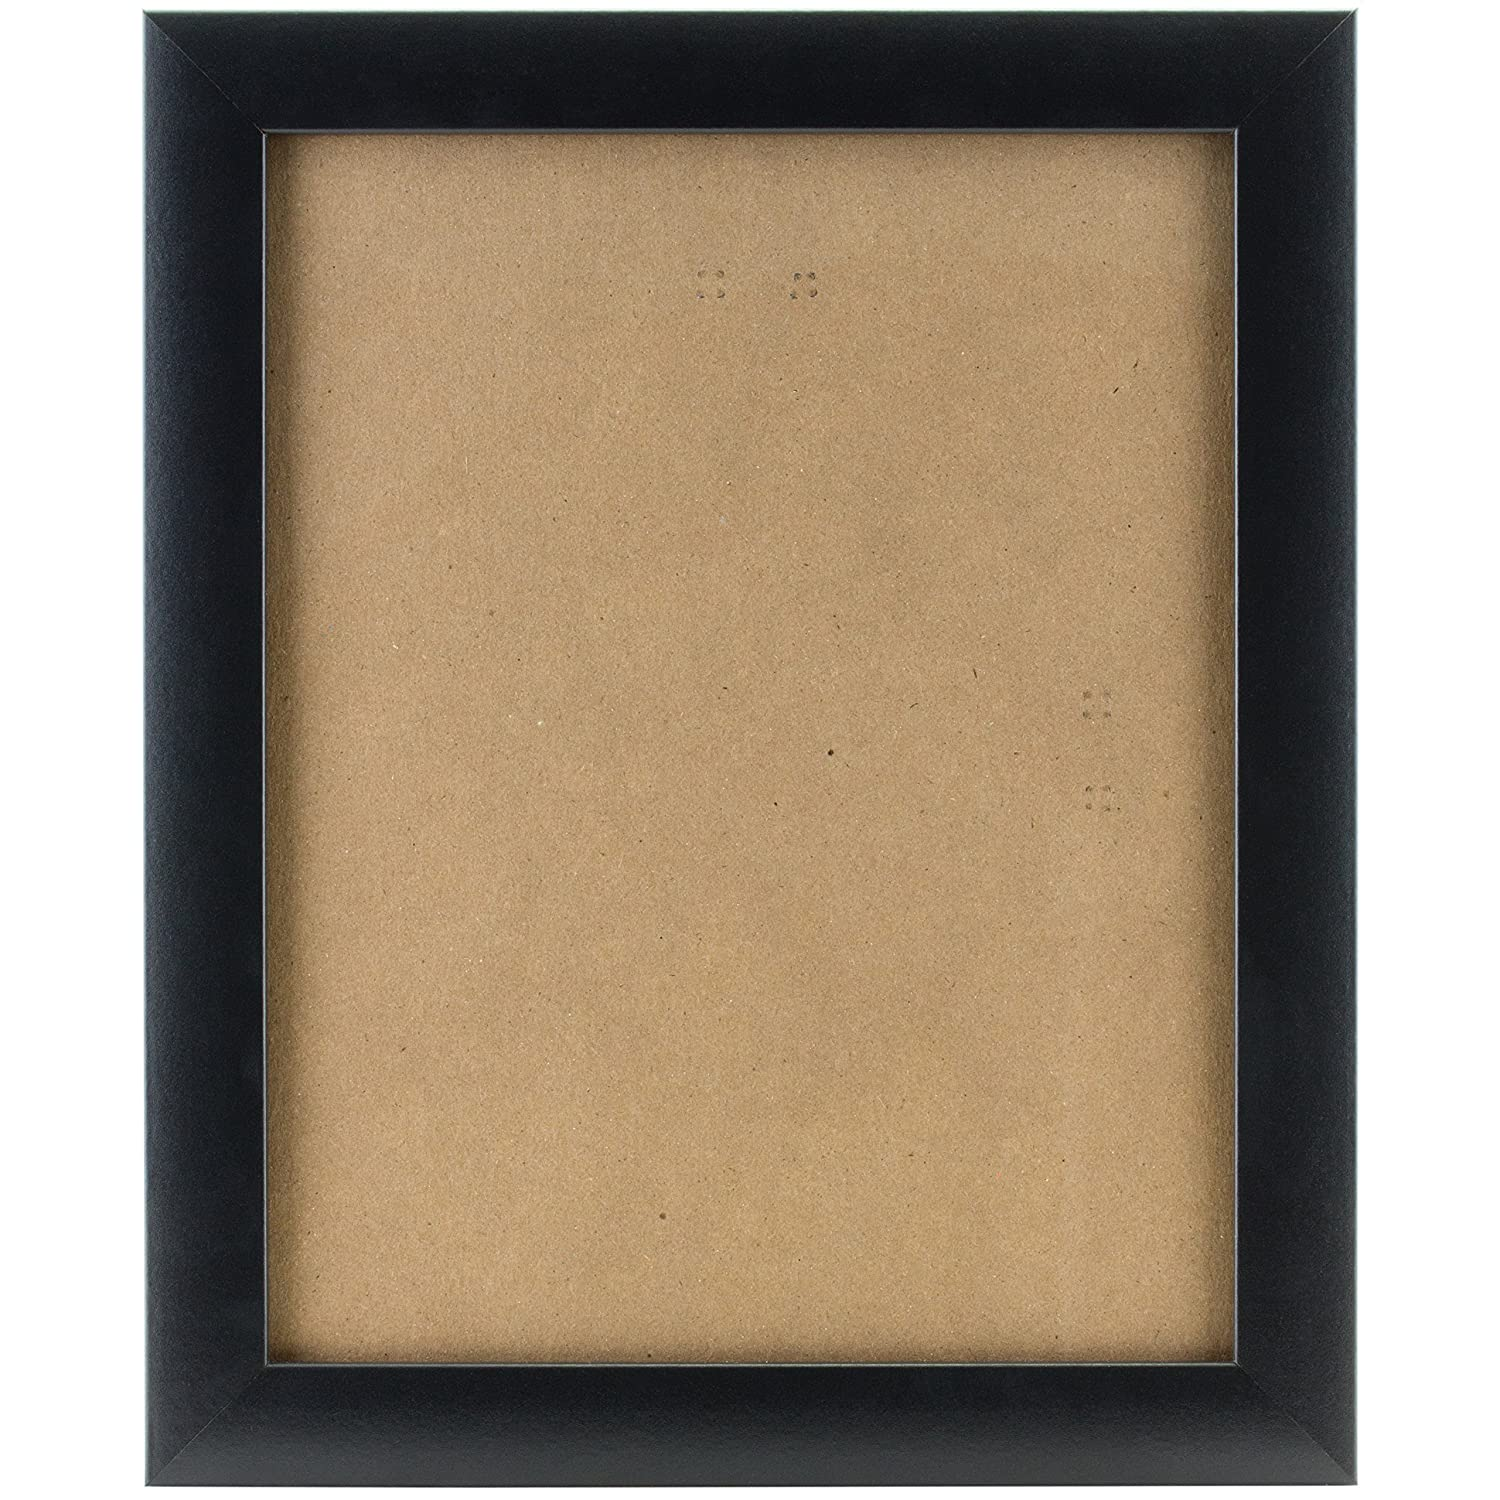 Picture Frames | Amazon.com